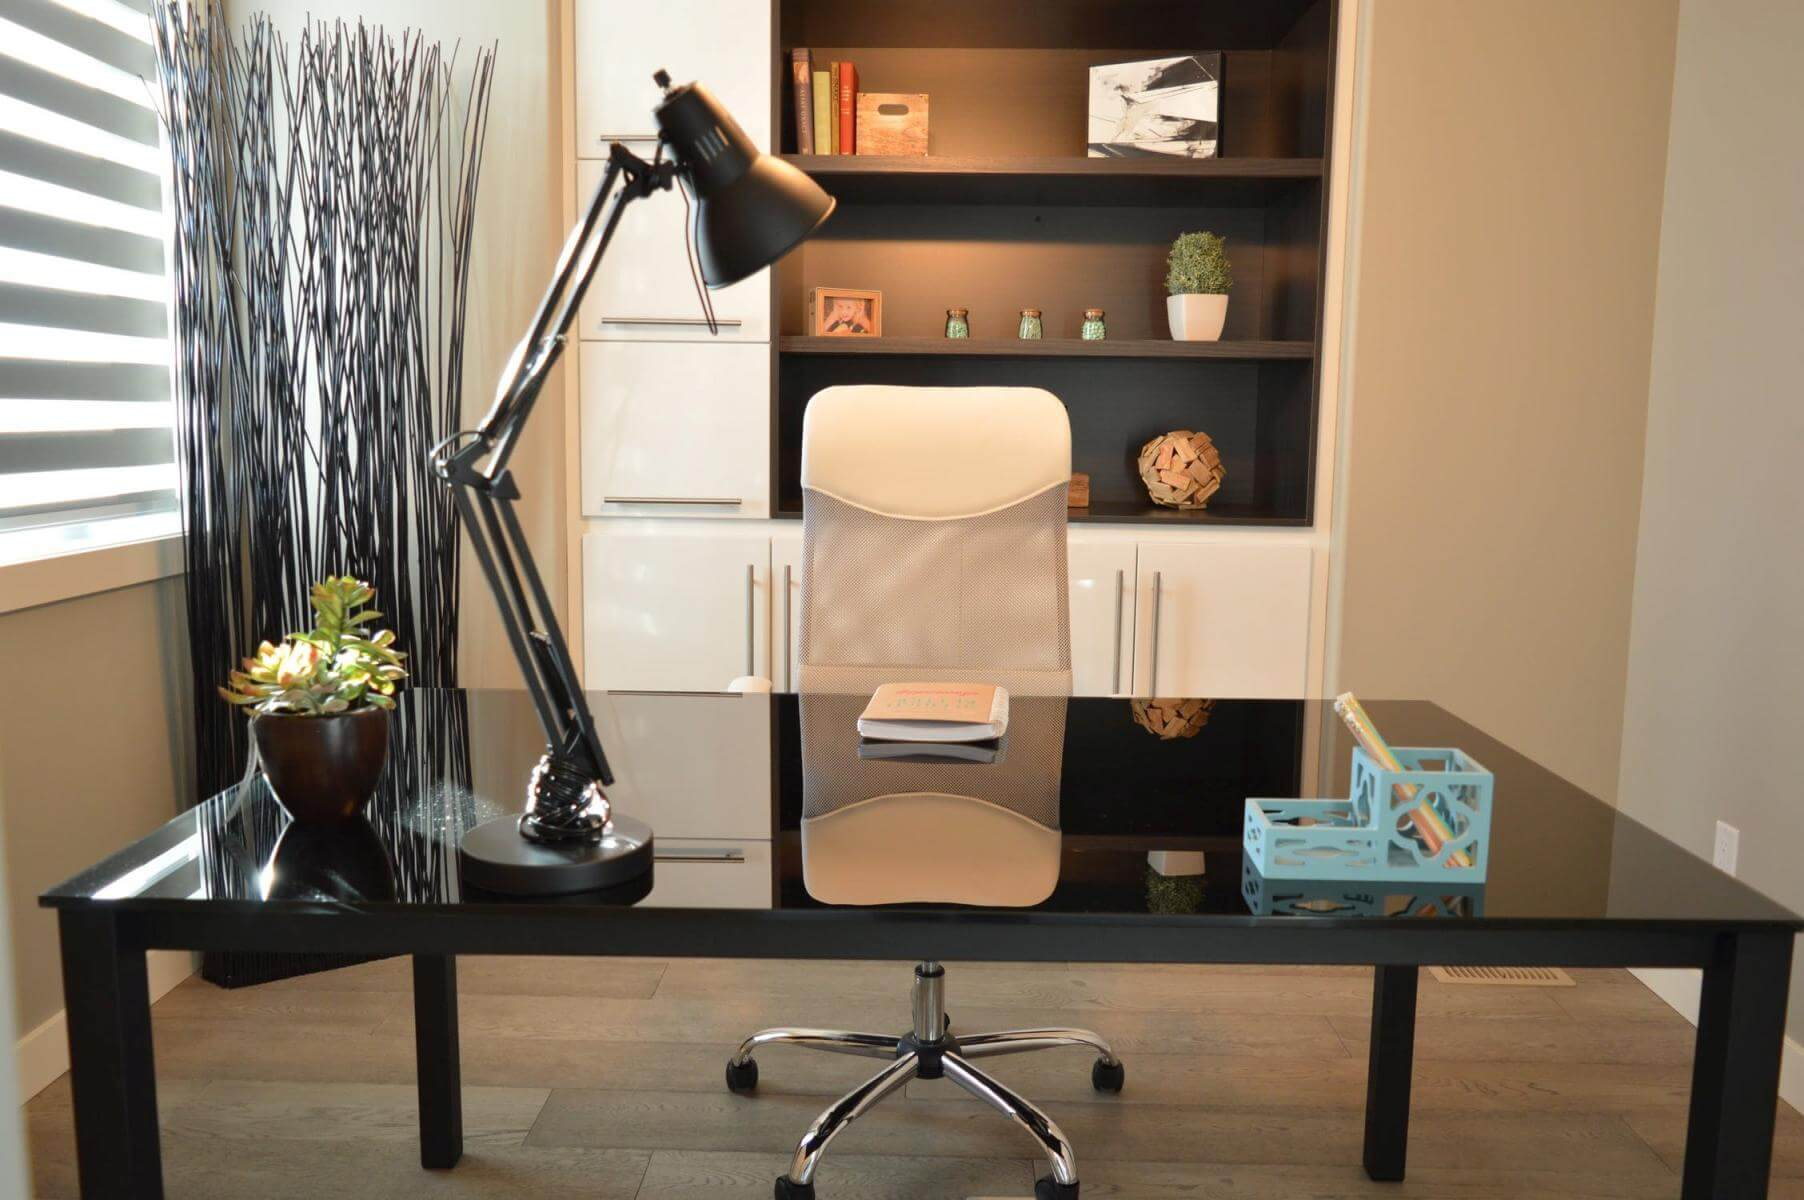 Learning the Advantages of Choosing Custom-Made Office Furniture